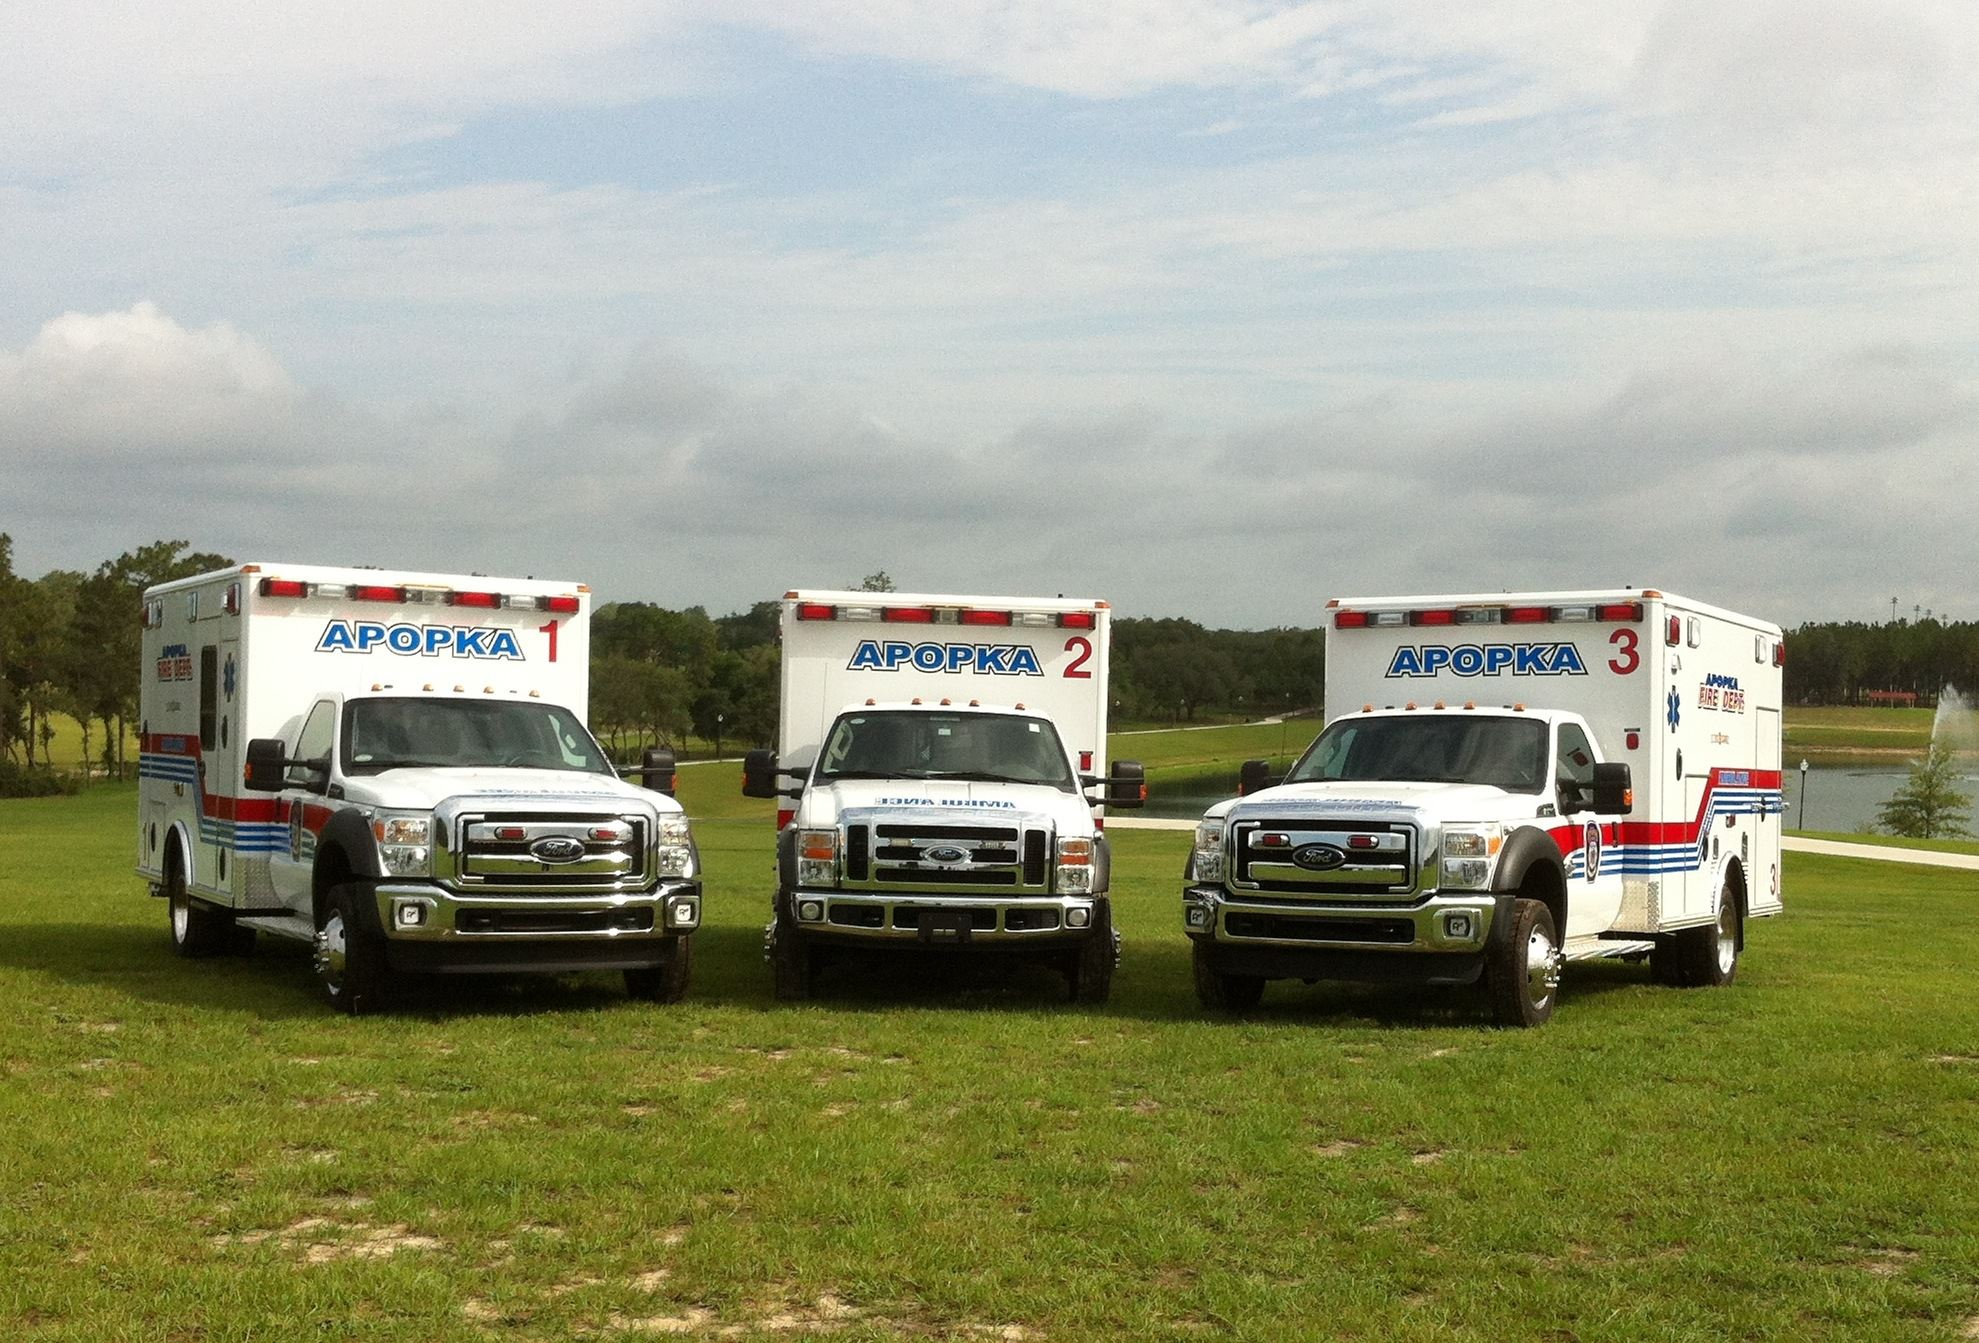 Three Apopka ambulance trucks parked on the grass.